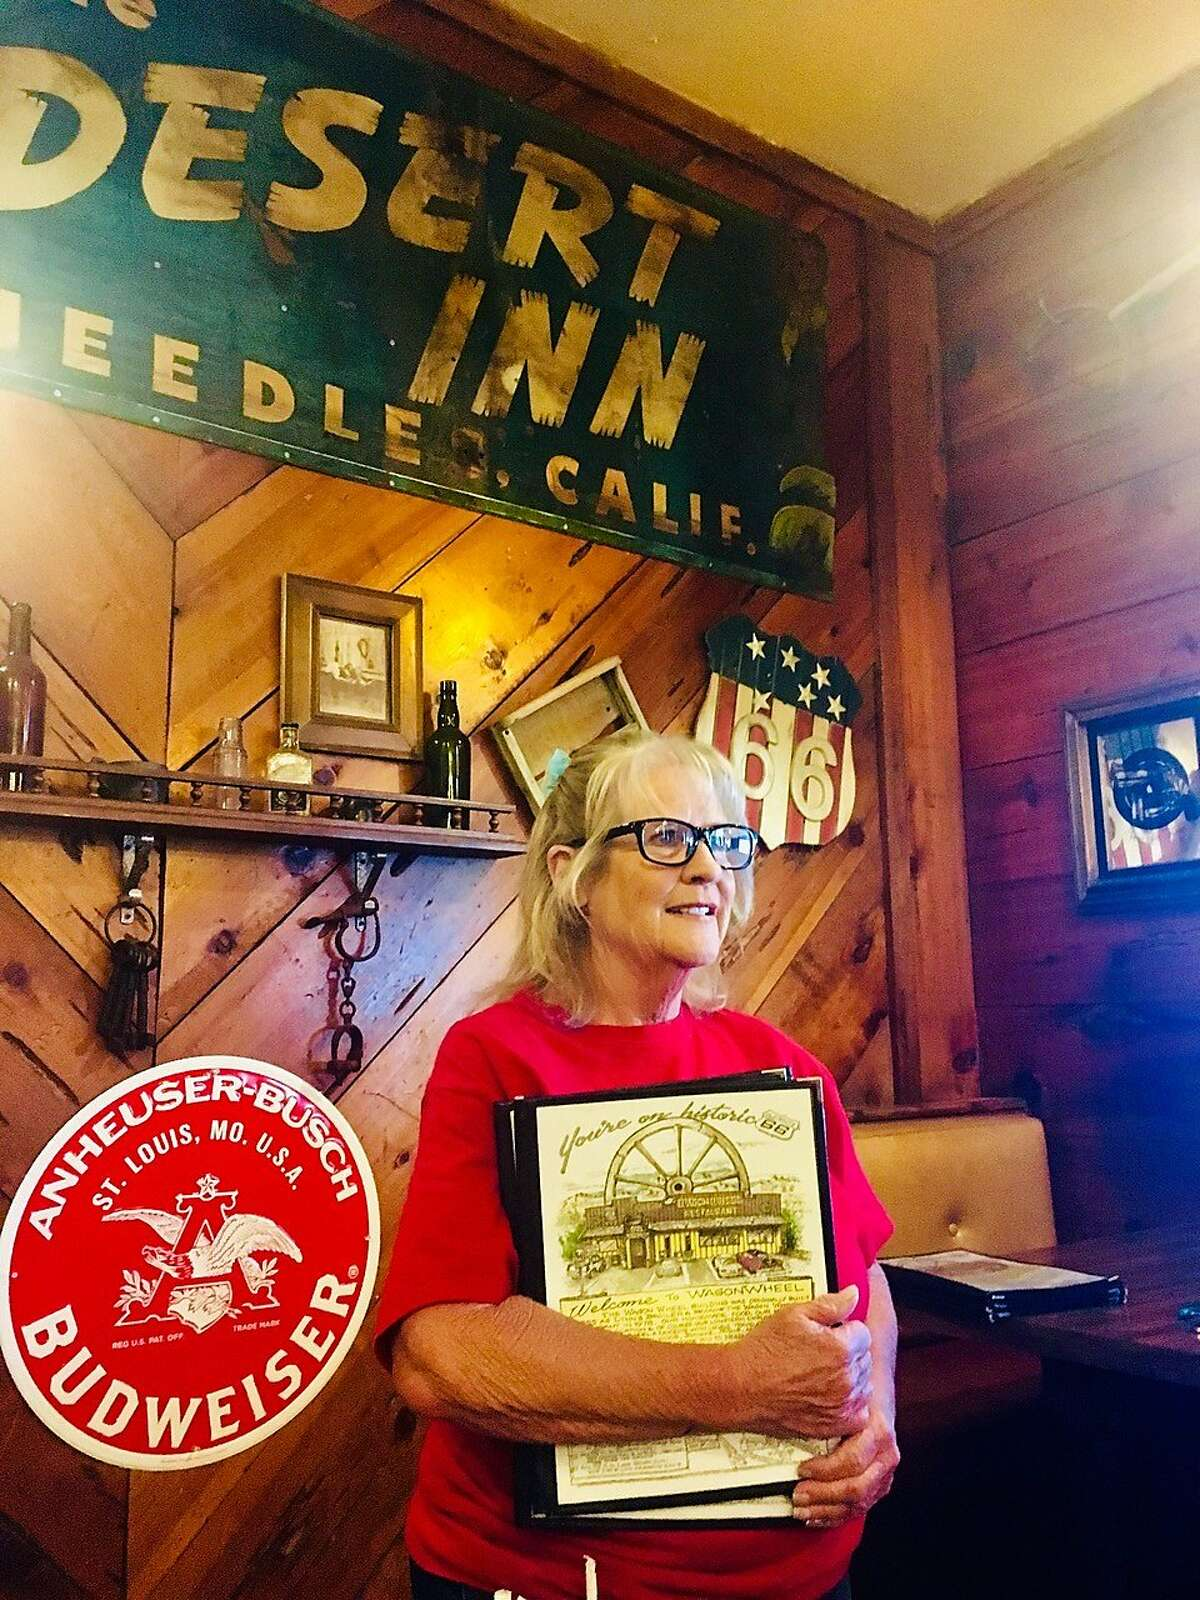 Robbie Tieman, a waitress at the Wagon Wheel restaurant, says she wishes California's gun laws were more like those just across the border in Arizona, where she lives.